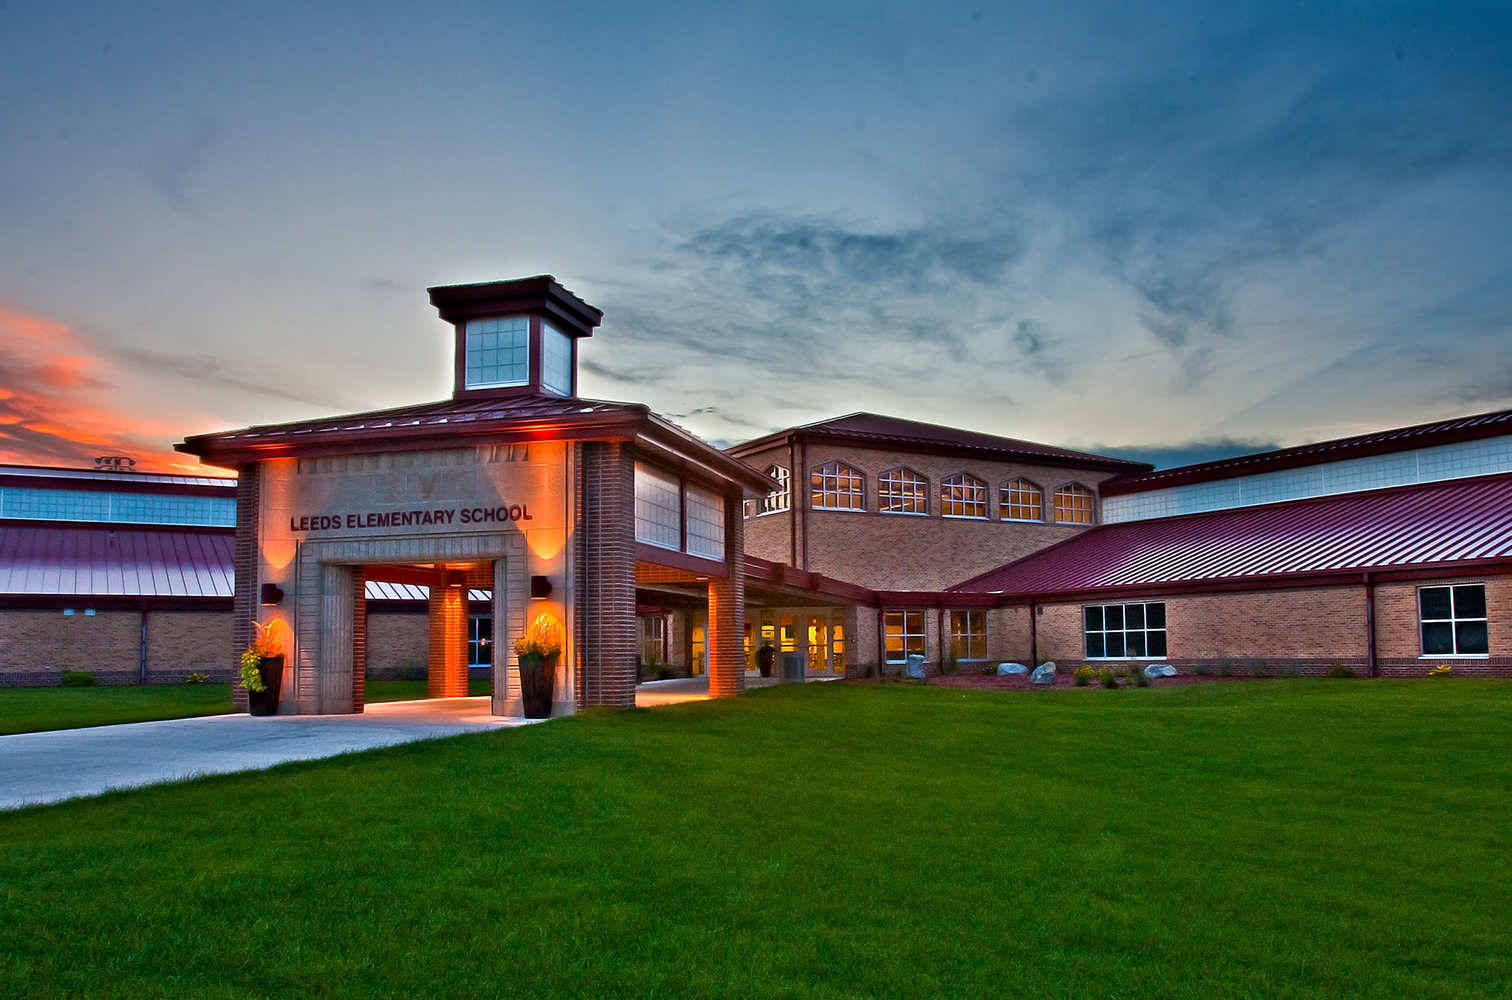 Leeds Elementary School Residential Architect Feh Associates Inc Sioux City Ia United